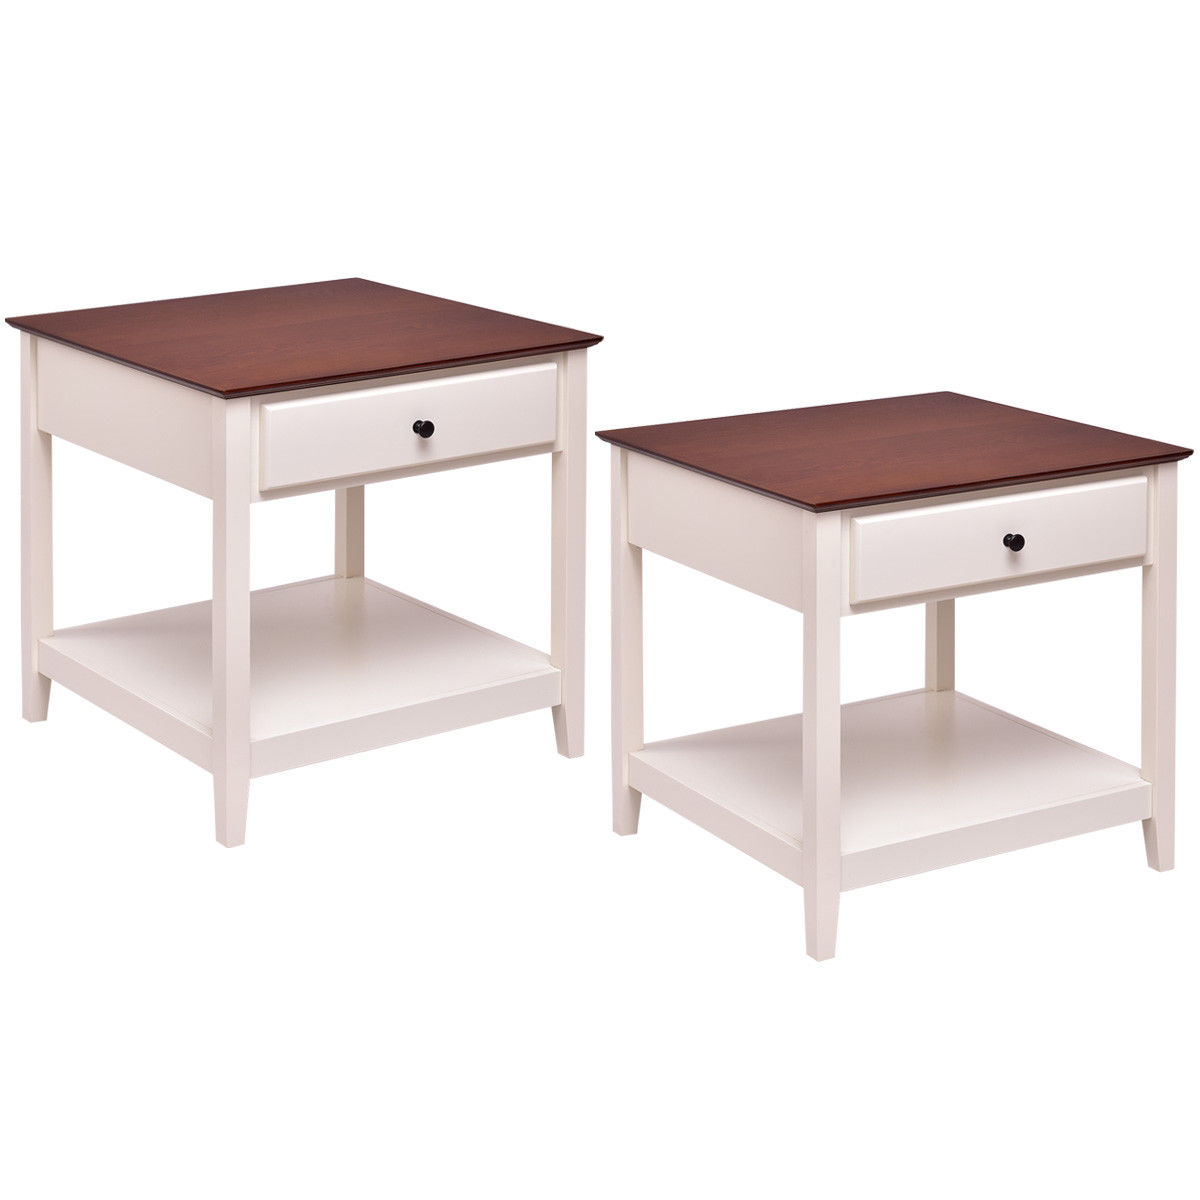 Costway Set of 2 Wood Side Table End Table Night Stand Coffee Table with Drawer & Shelf - image 9 de 9